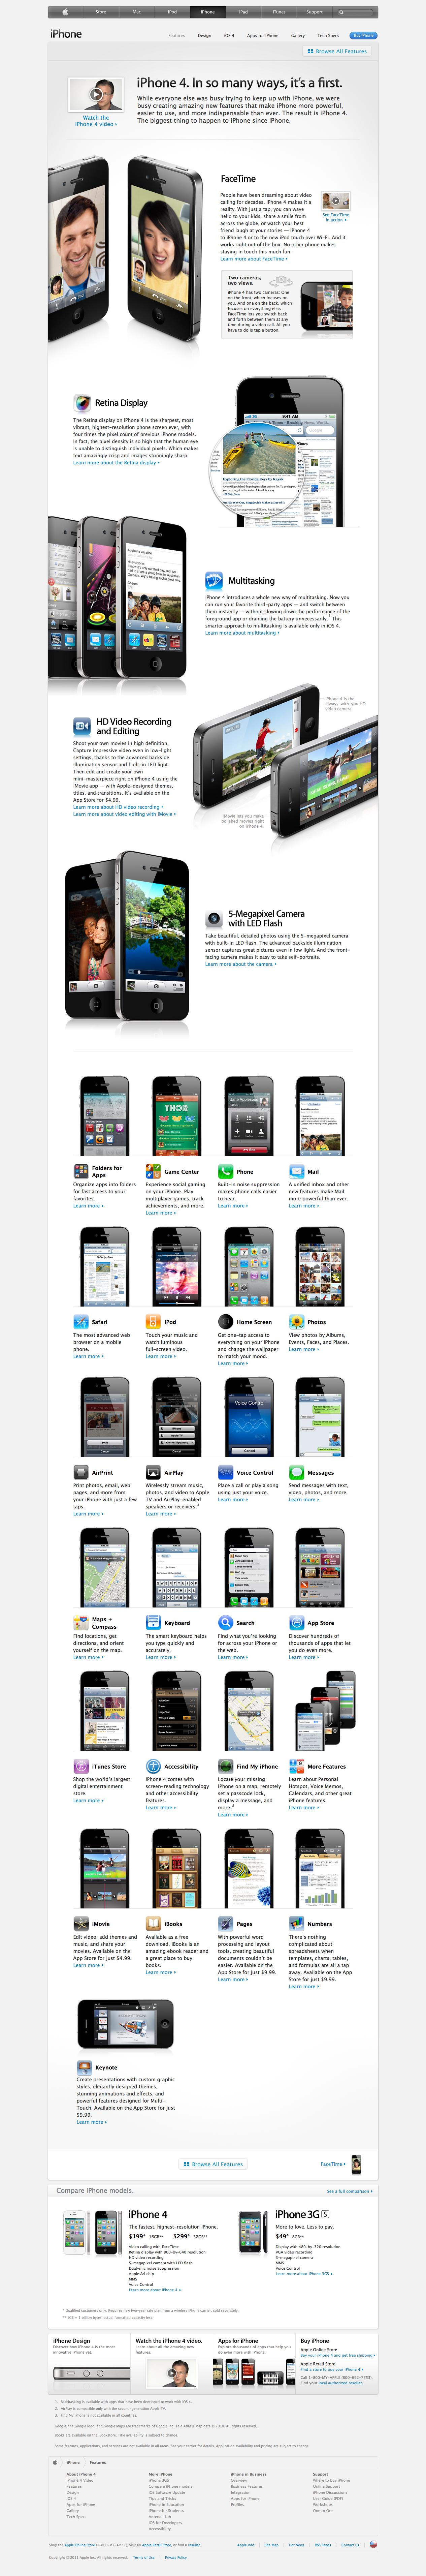 iPhone web page design for Apple